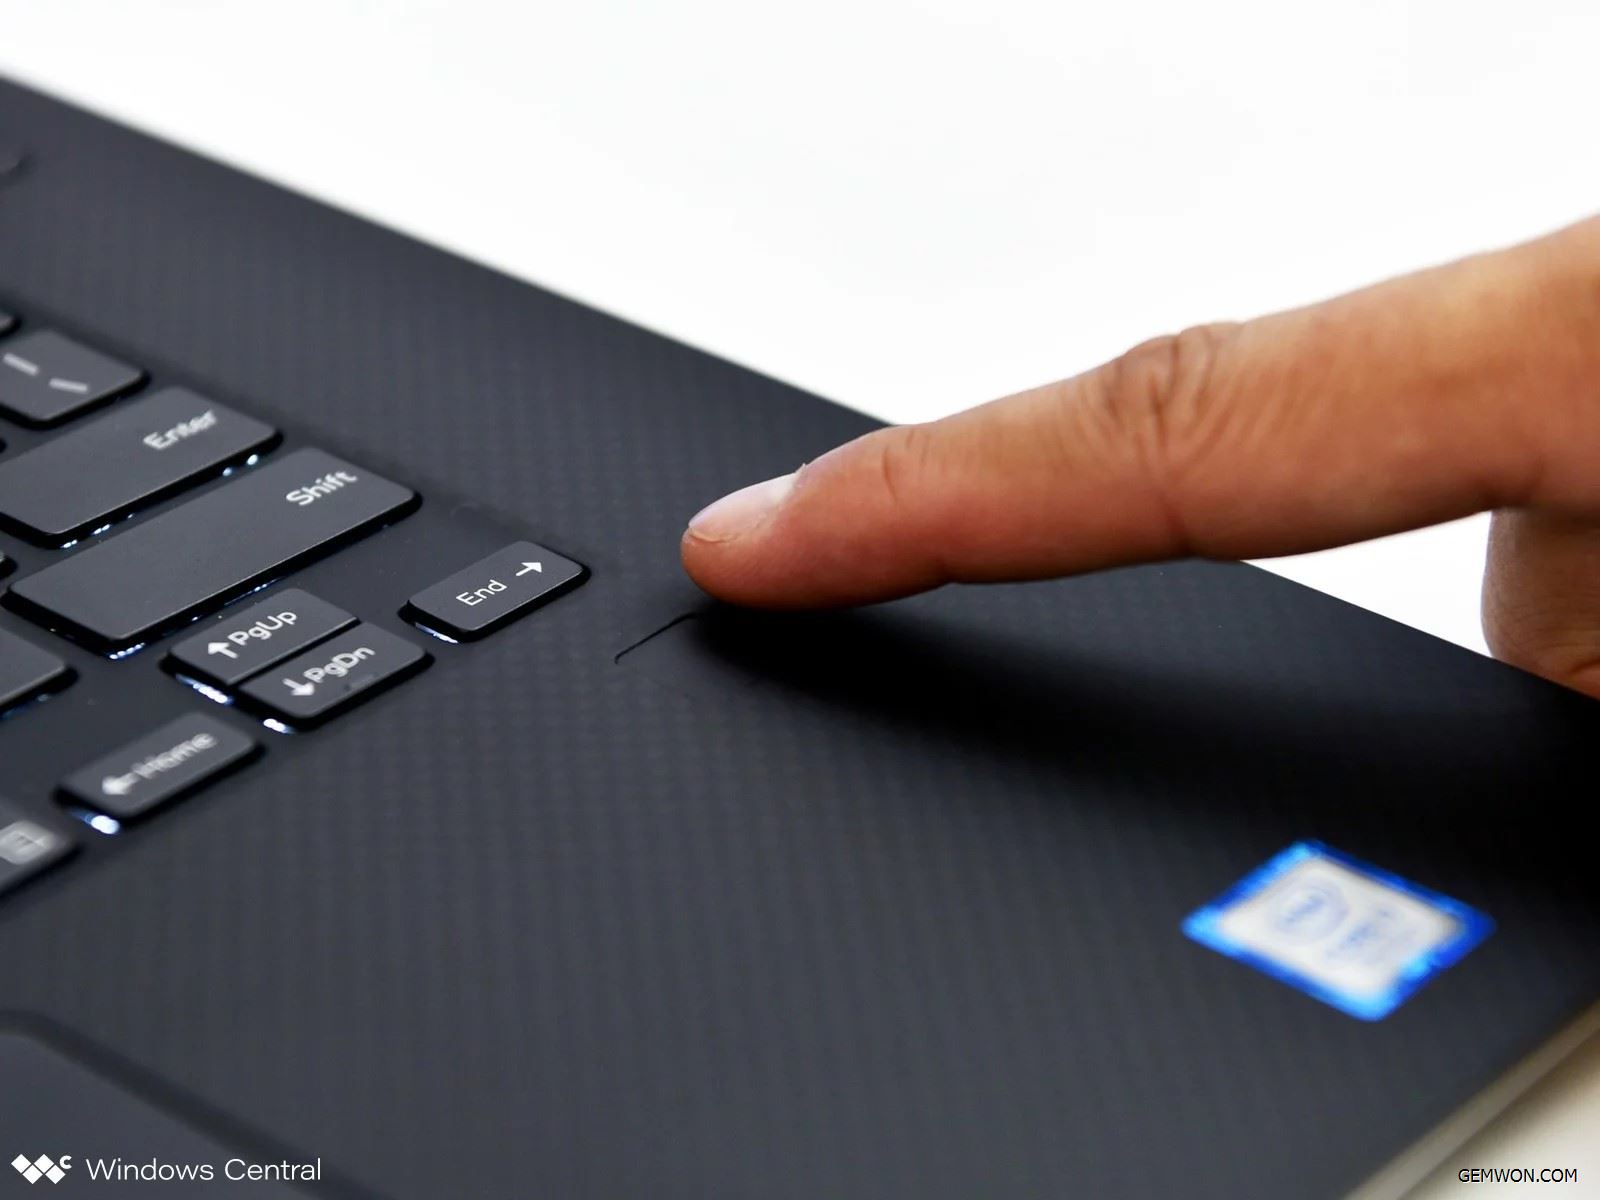 8 Solutions to Fix Dell Fingerprint Reader Not Working Windows 10